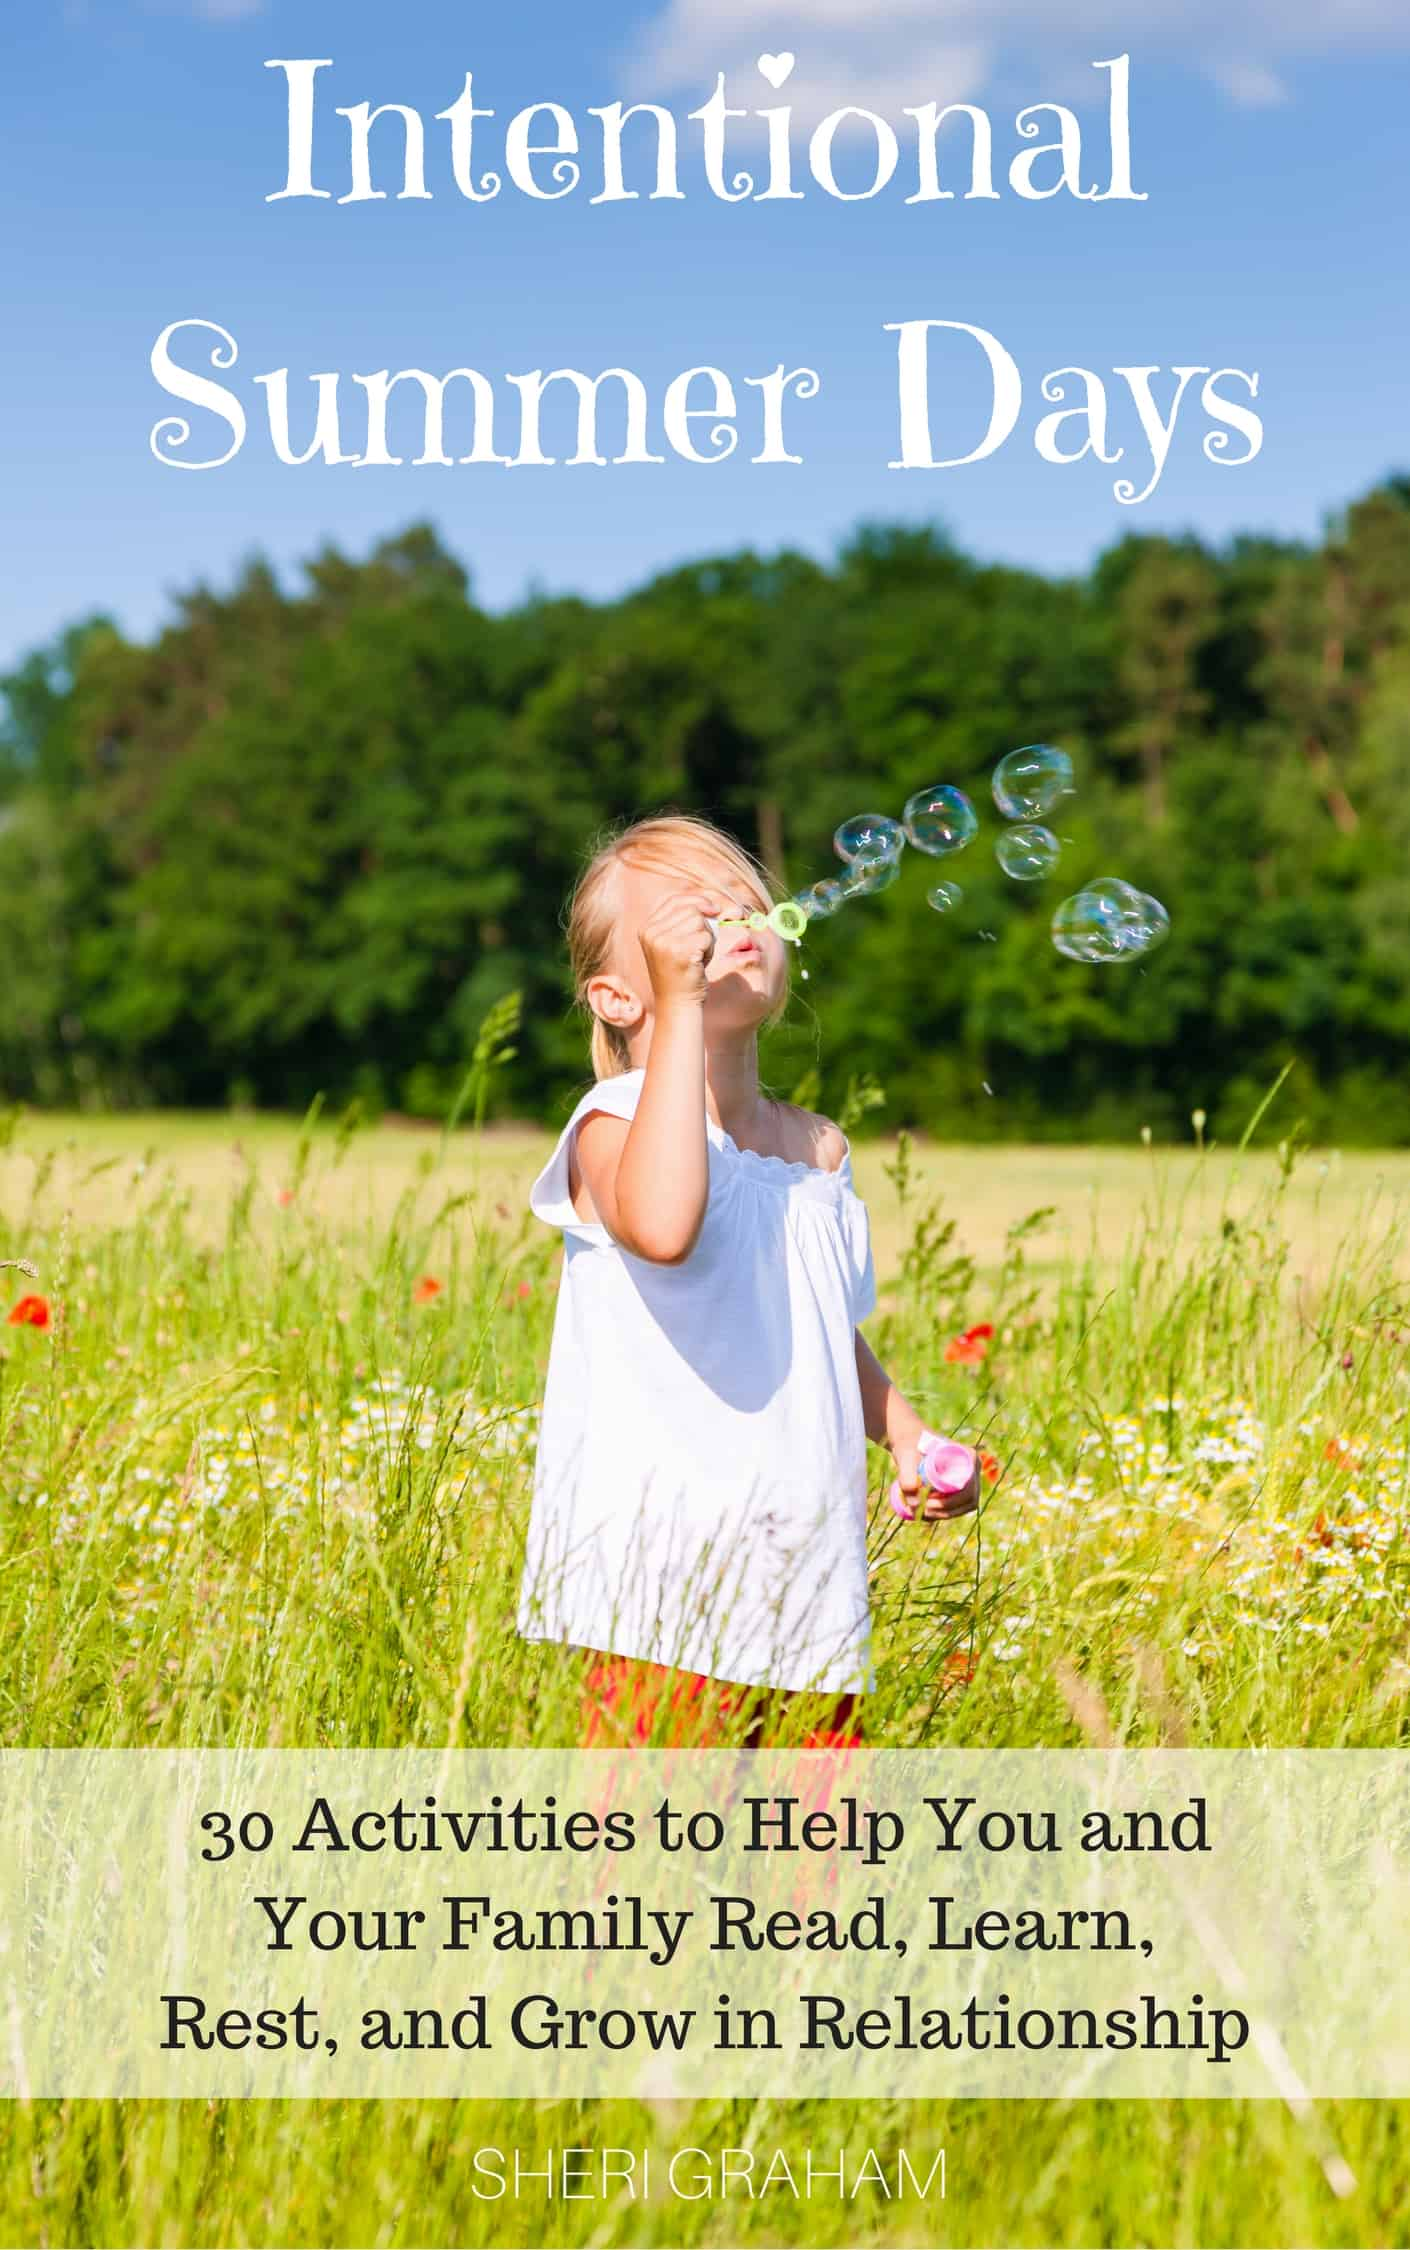 Intentional Summer Days (eBook)